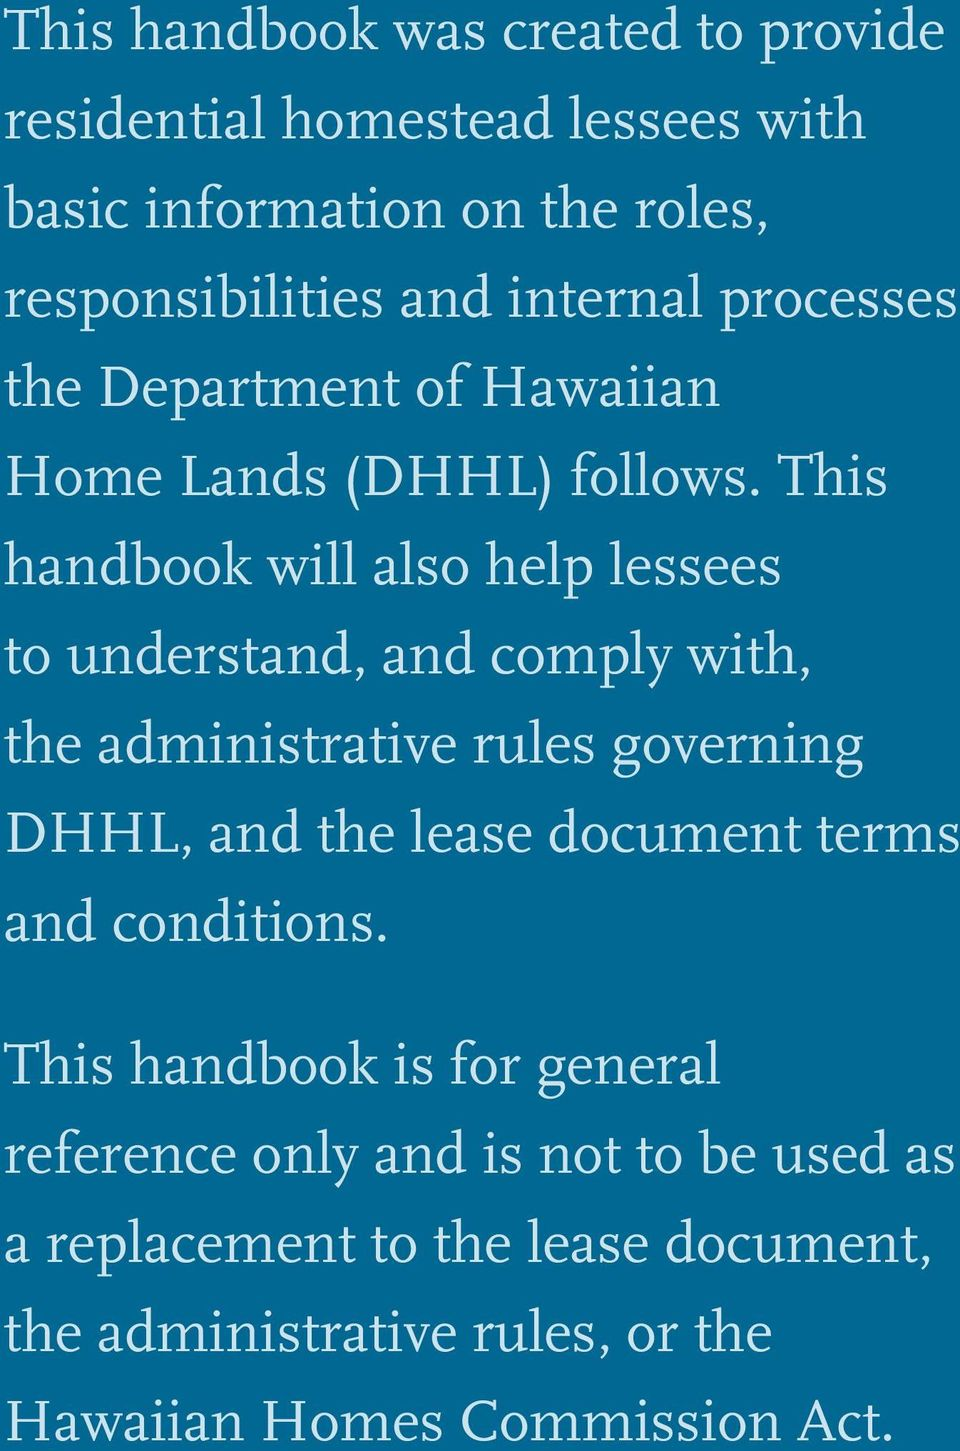 This handbook will also help lessees to understand, and comply with, the administrative rules governing DHHL, and the lease